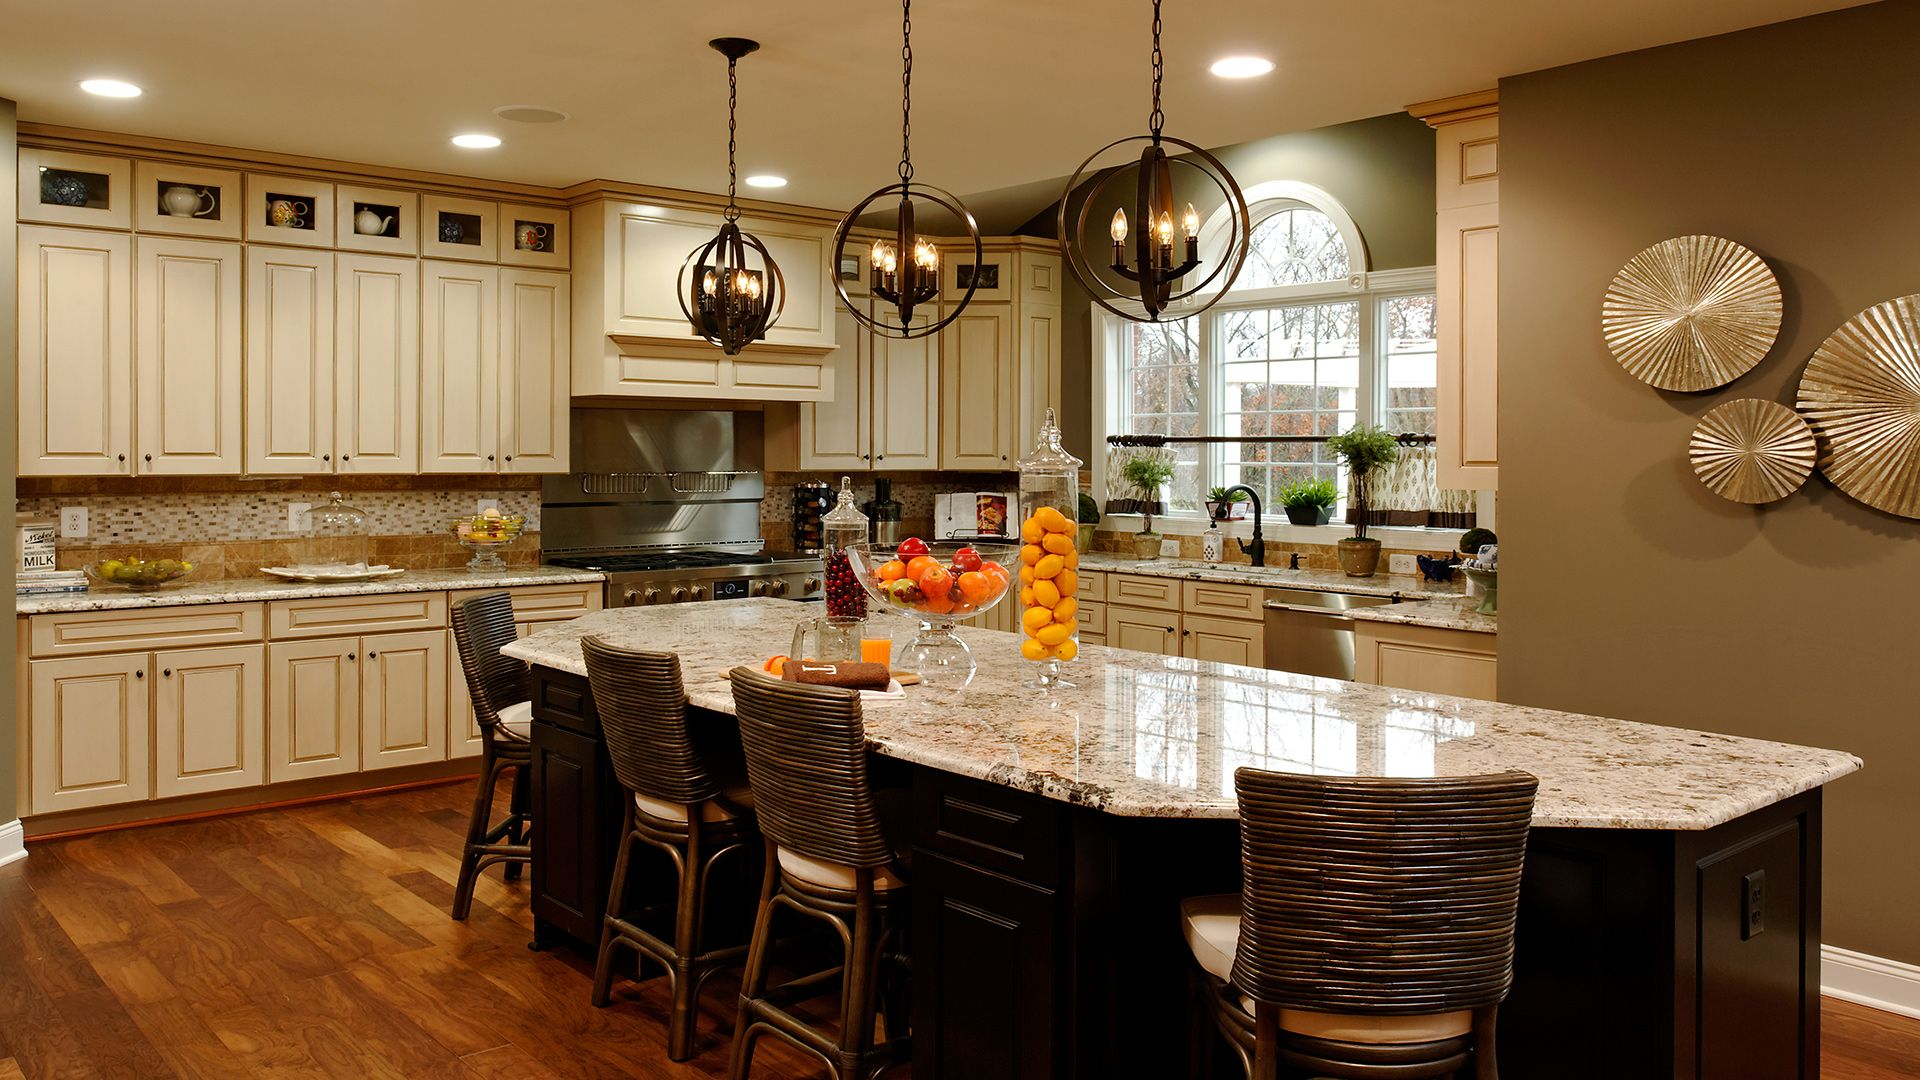 Toll Brothers - Kitchen Gallery | Kitchen gallery, Kitchen ...